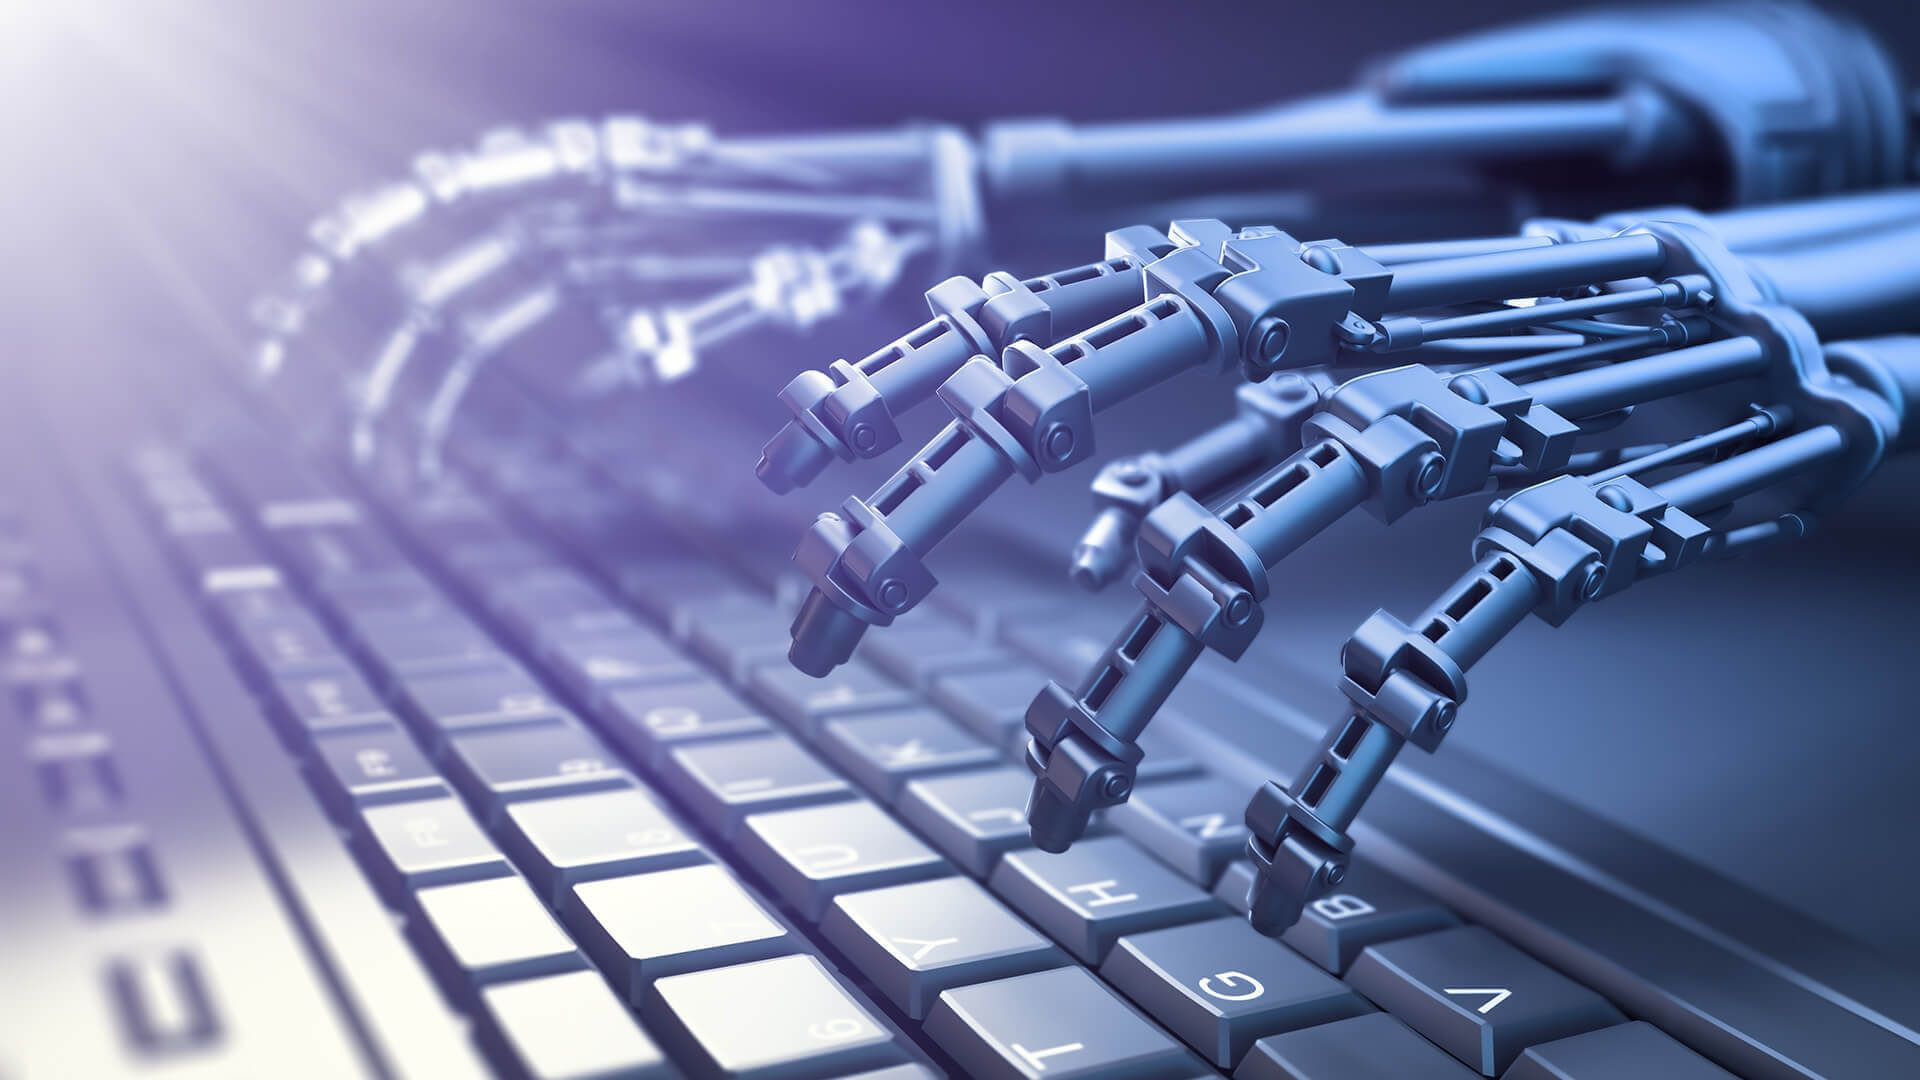 Paid search professionals might be nervous about losing their jobs to automation, but columnist Anna Shirley makes the case that PPC automation may actually benefit them https://goo.gl/aG8Cms